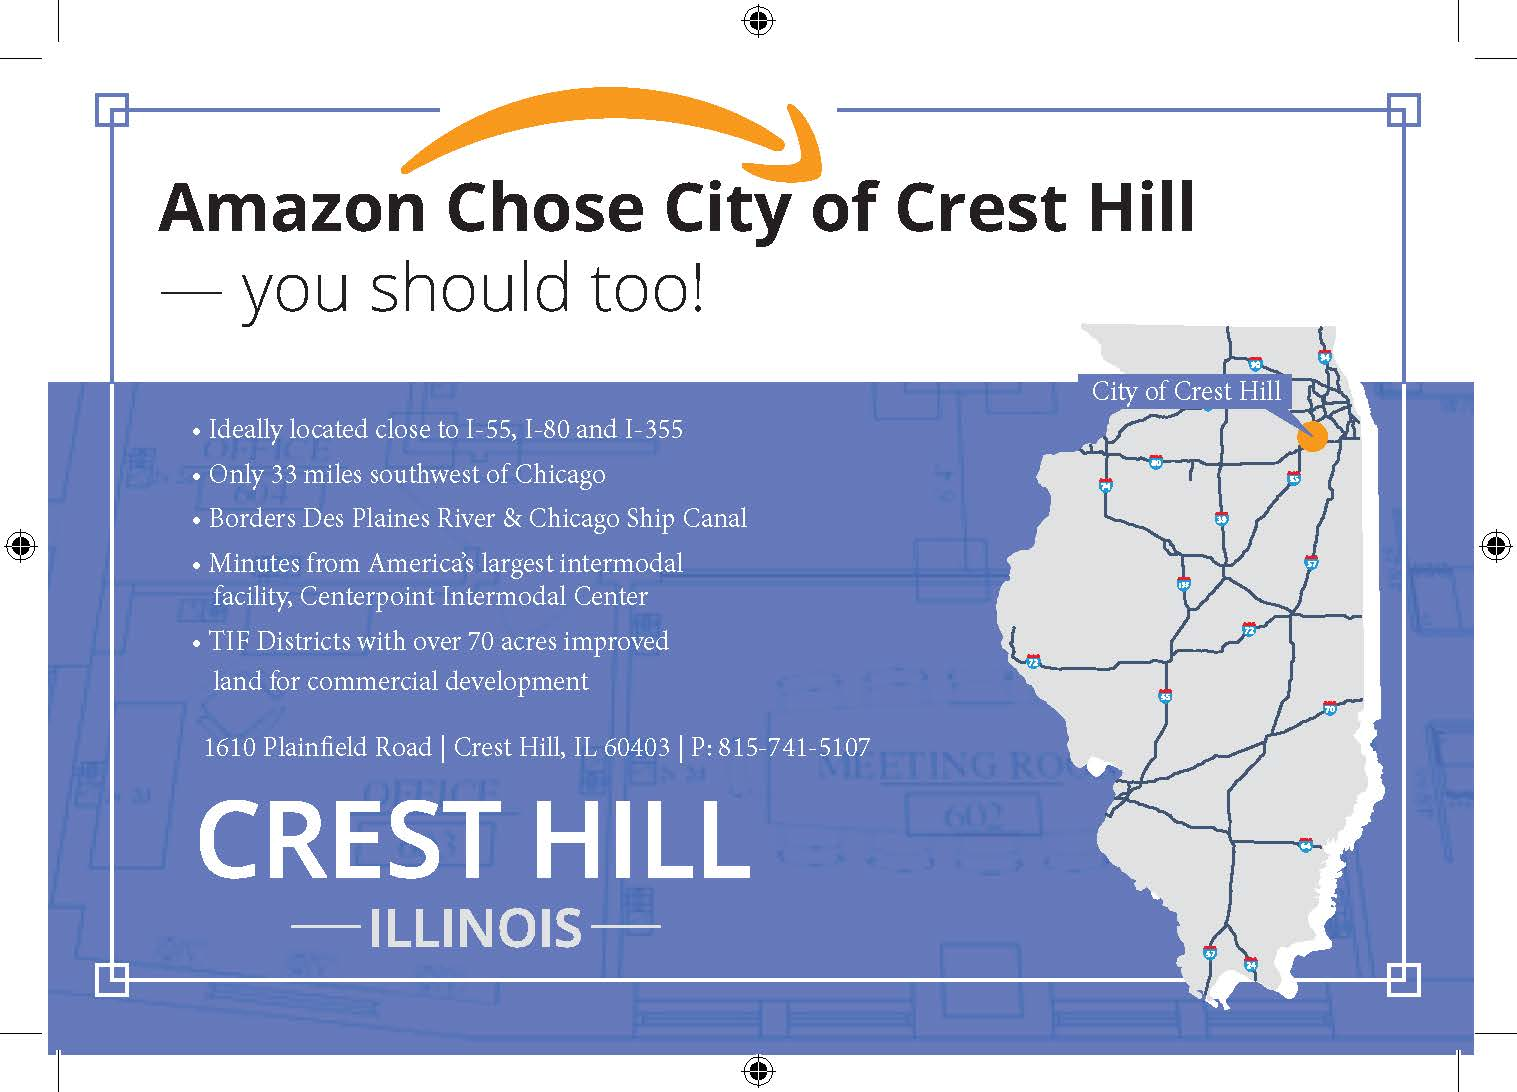 Crest hill il official website amazon ad publicscrutiny Image collections